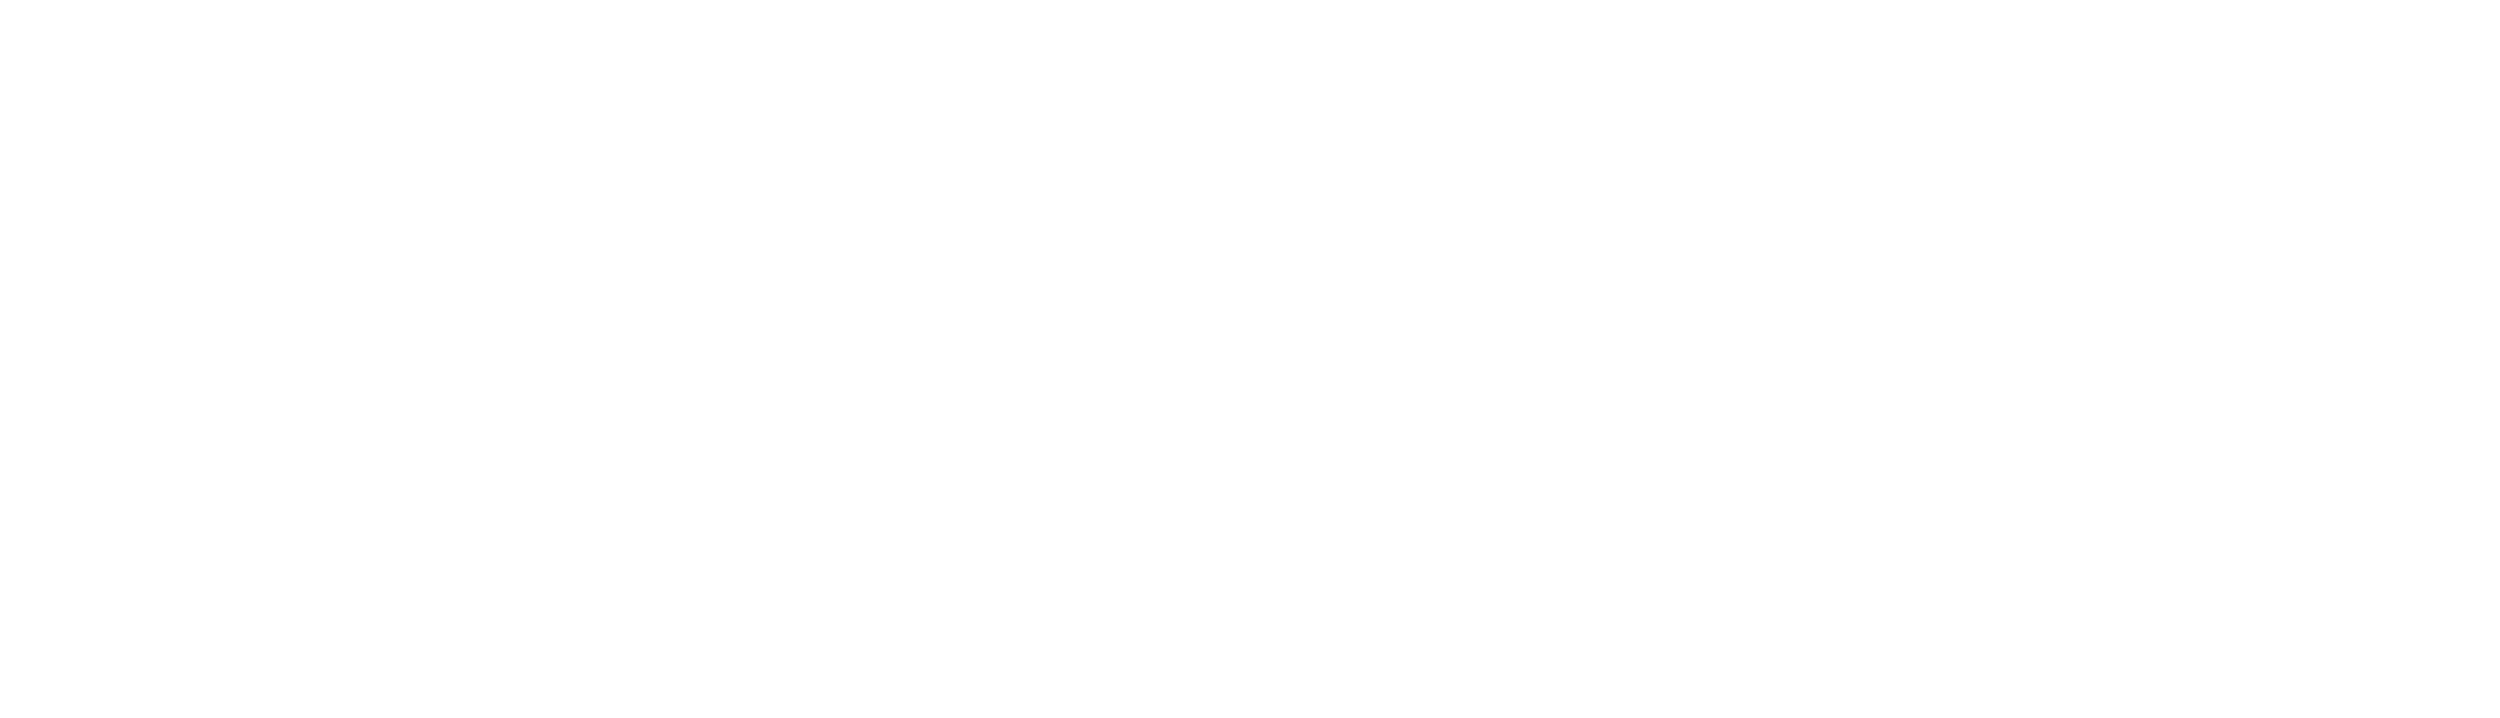 Social_Enterprise_UK_Member_Certified_Small_White.png